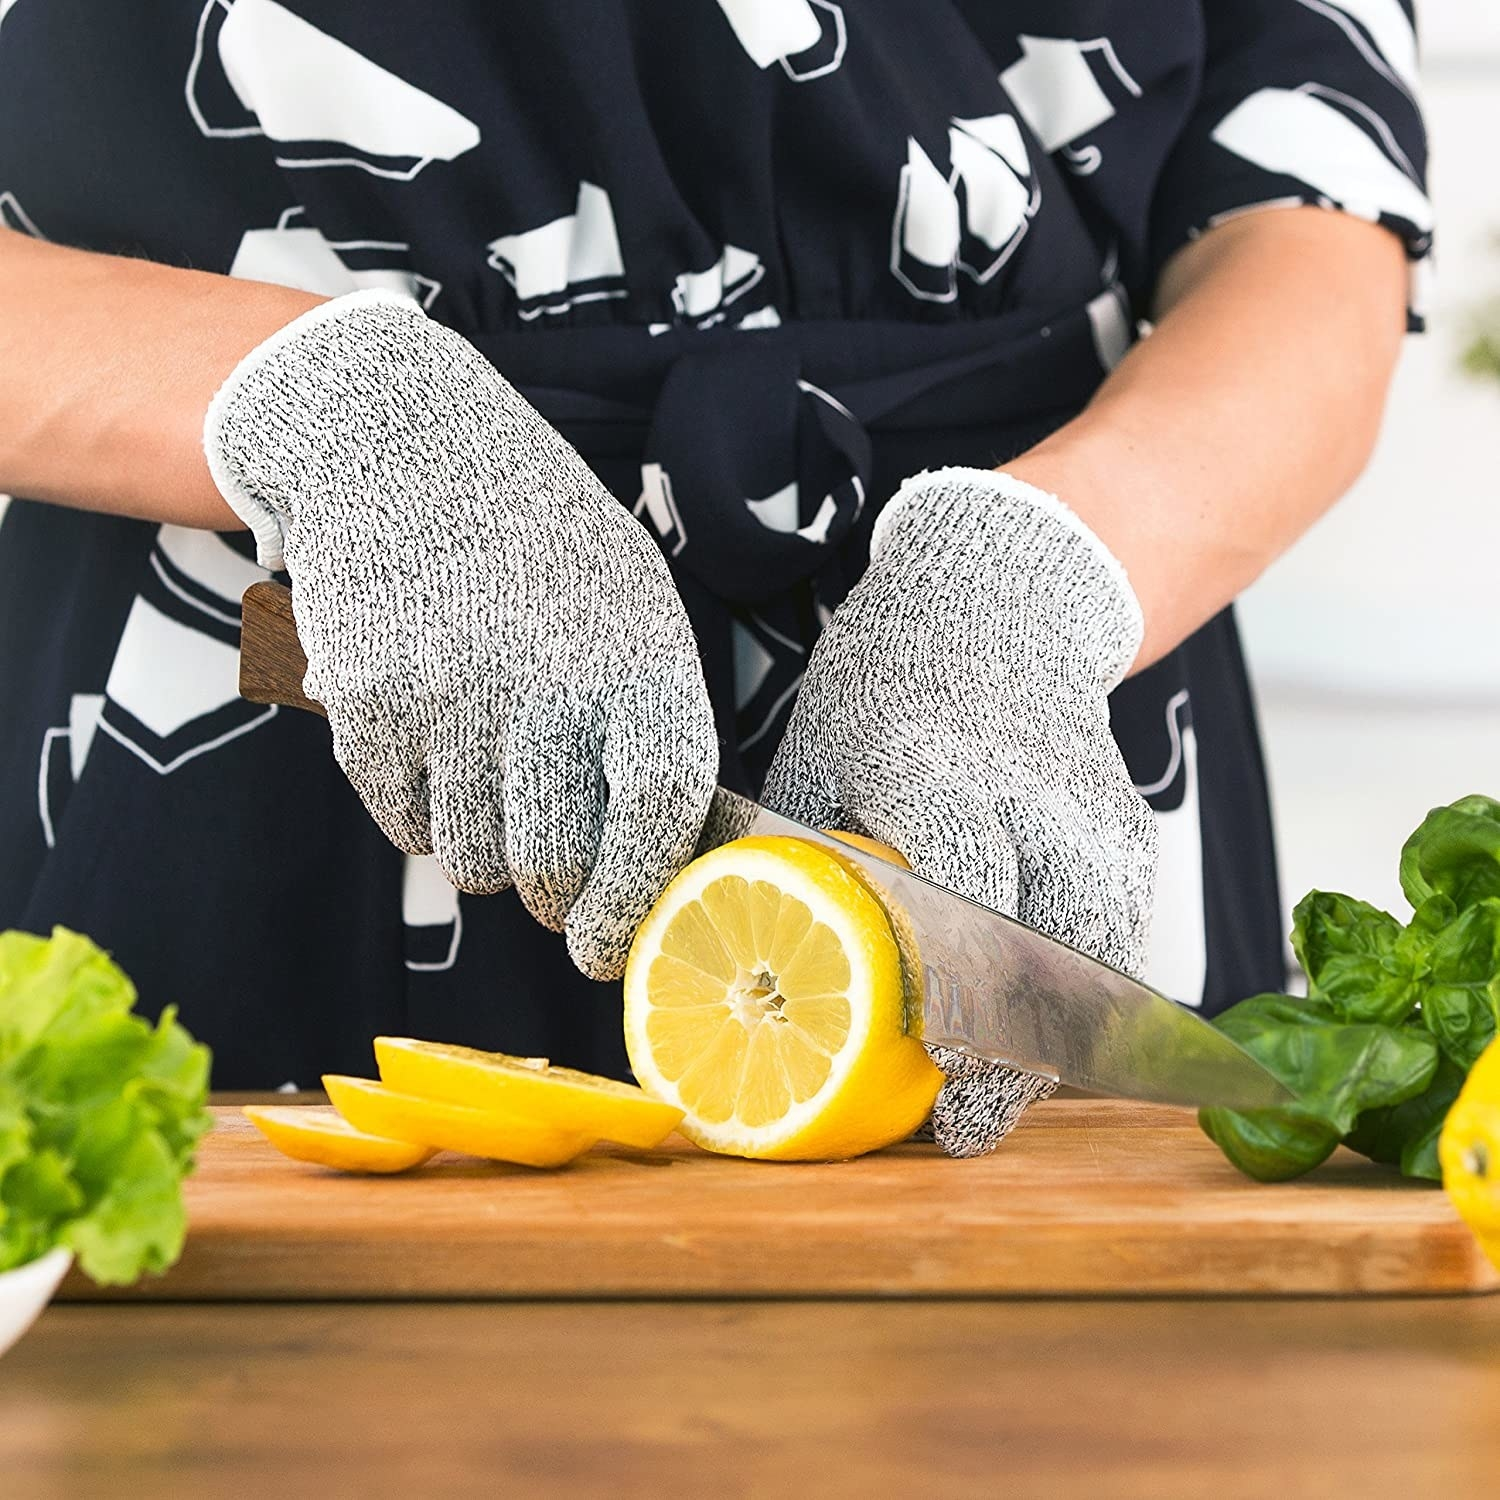 A person cutting a lemon while wearing the gloves